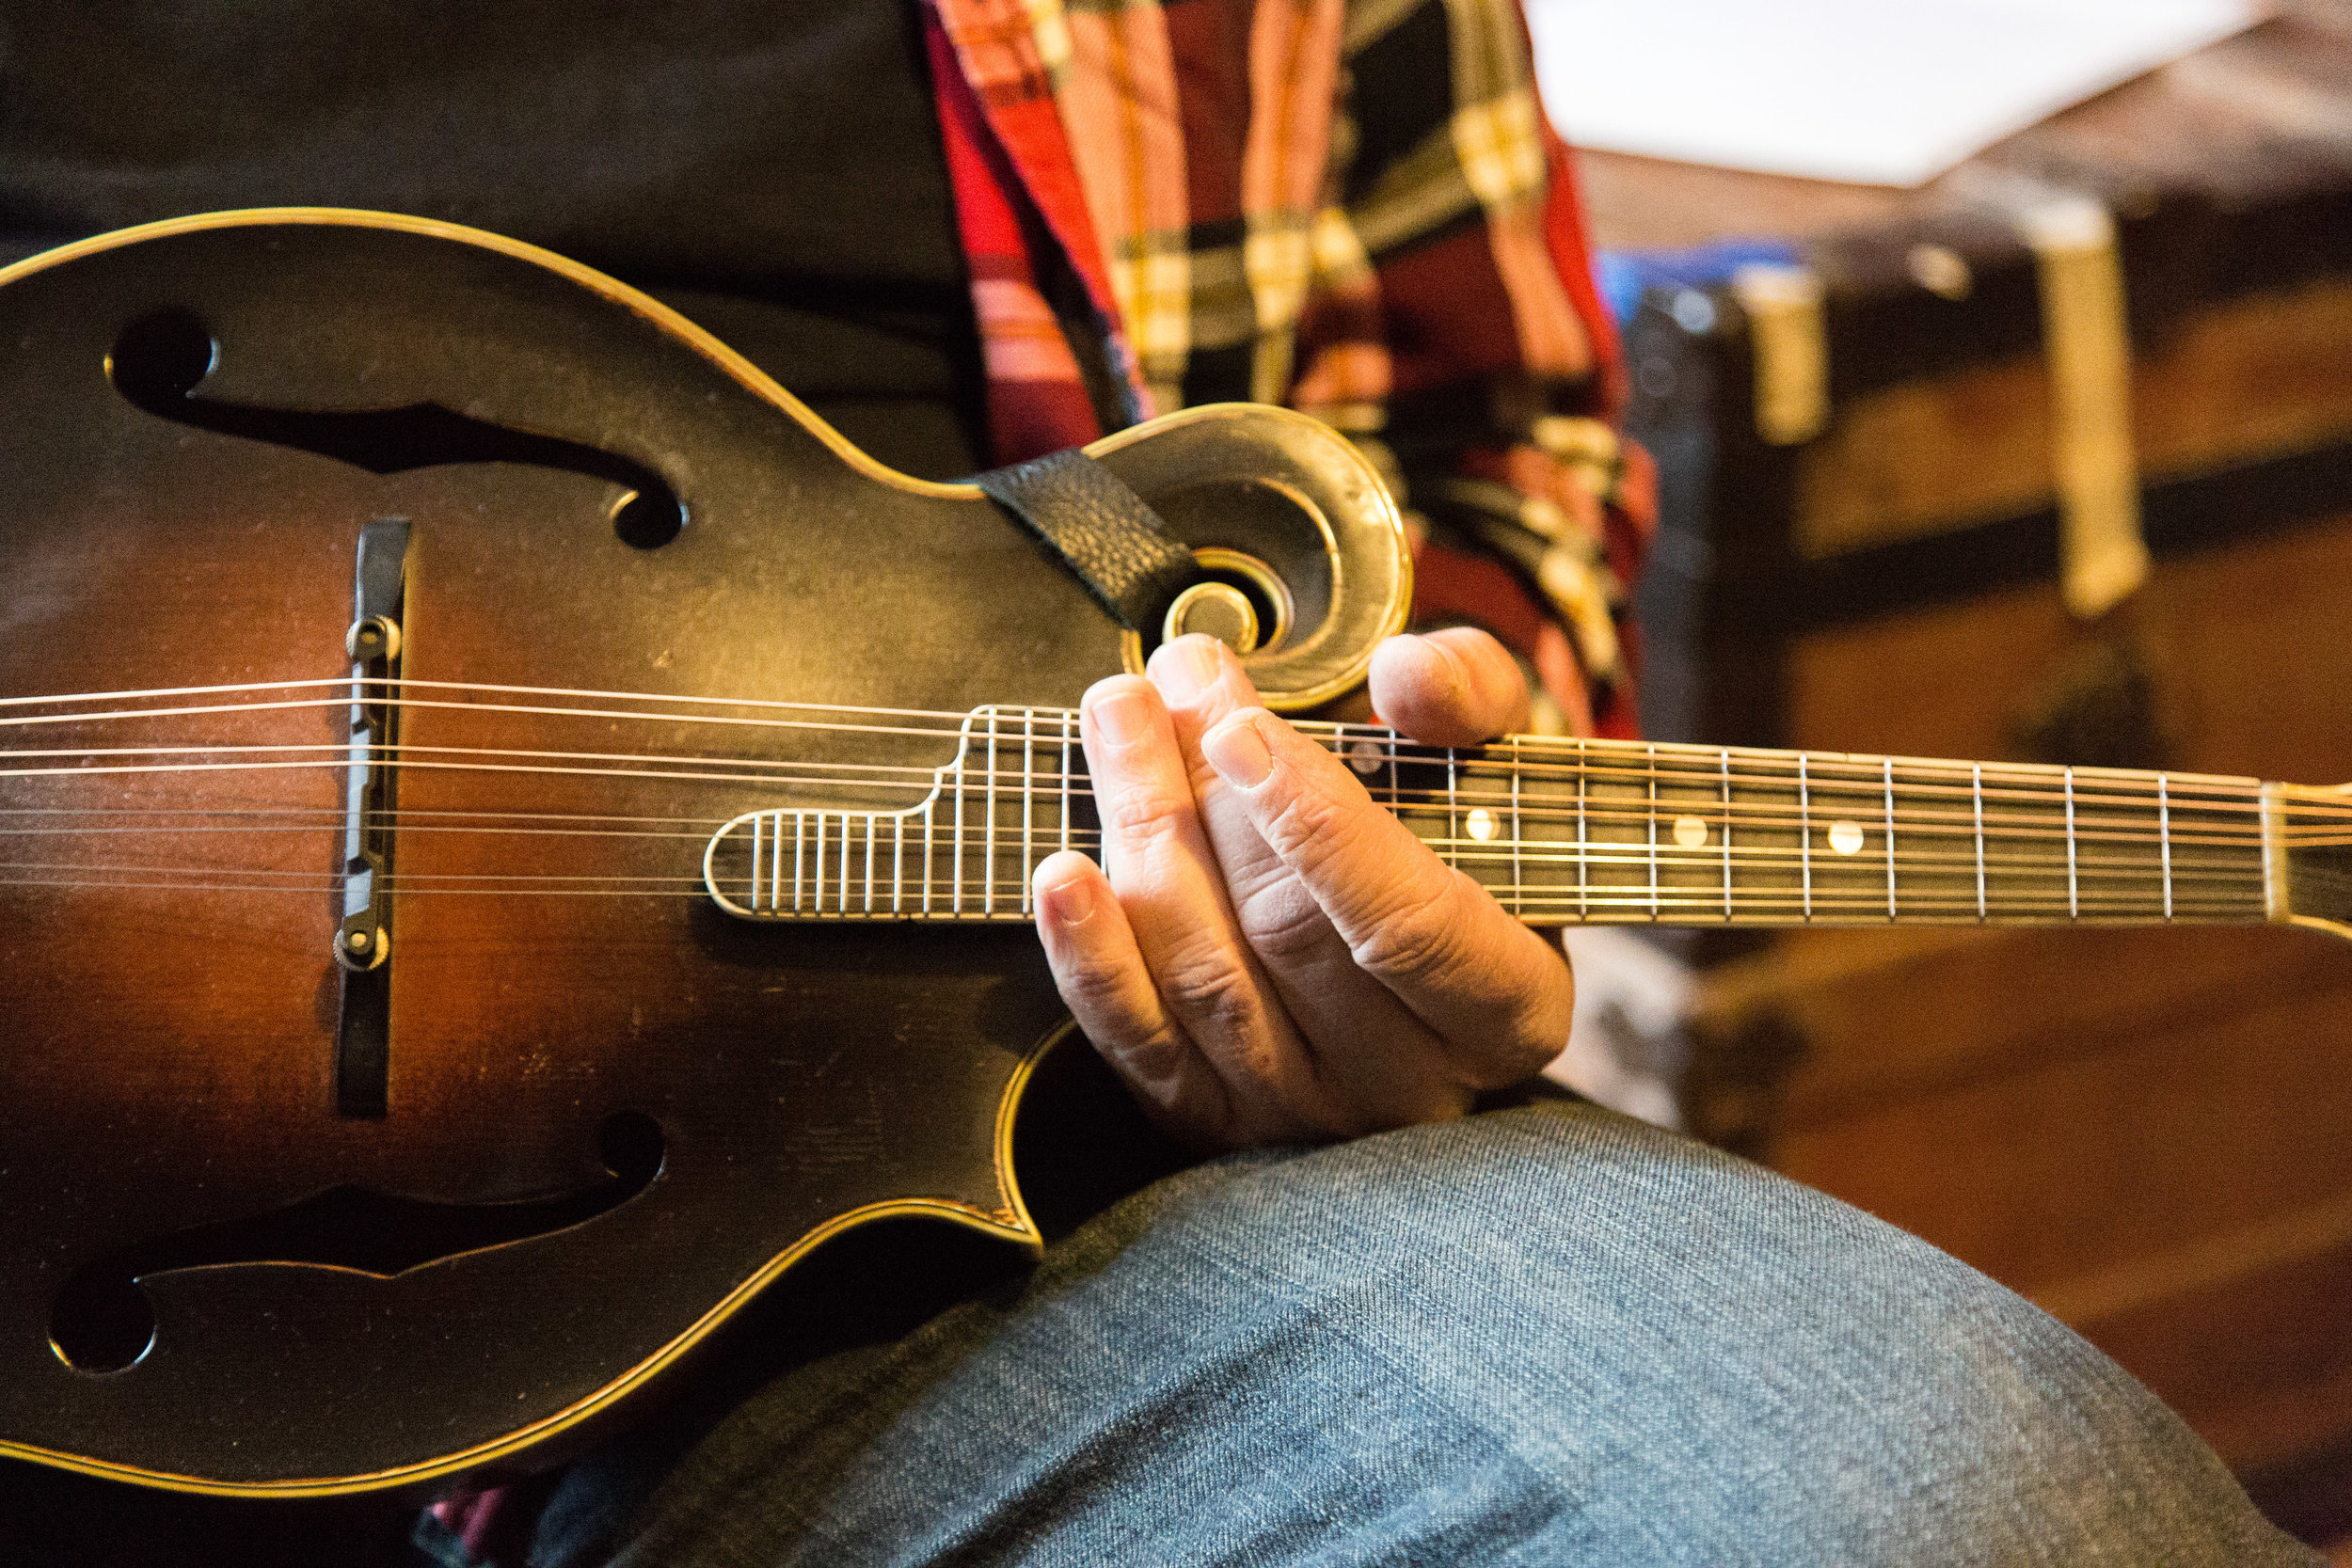 Tony holds one of his beloved mandolins.